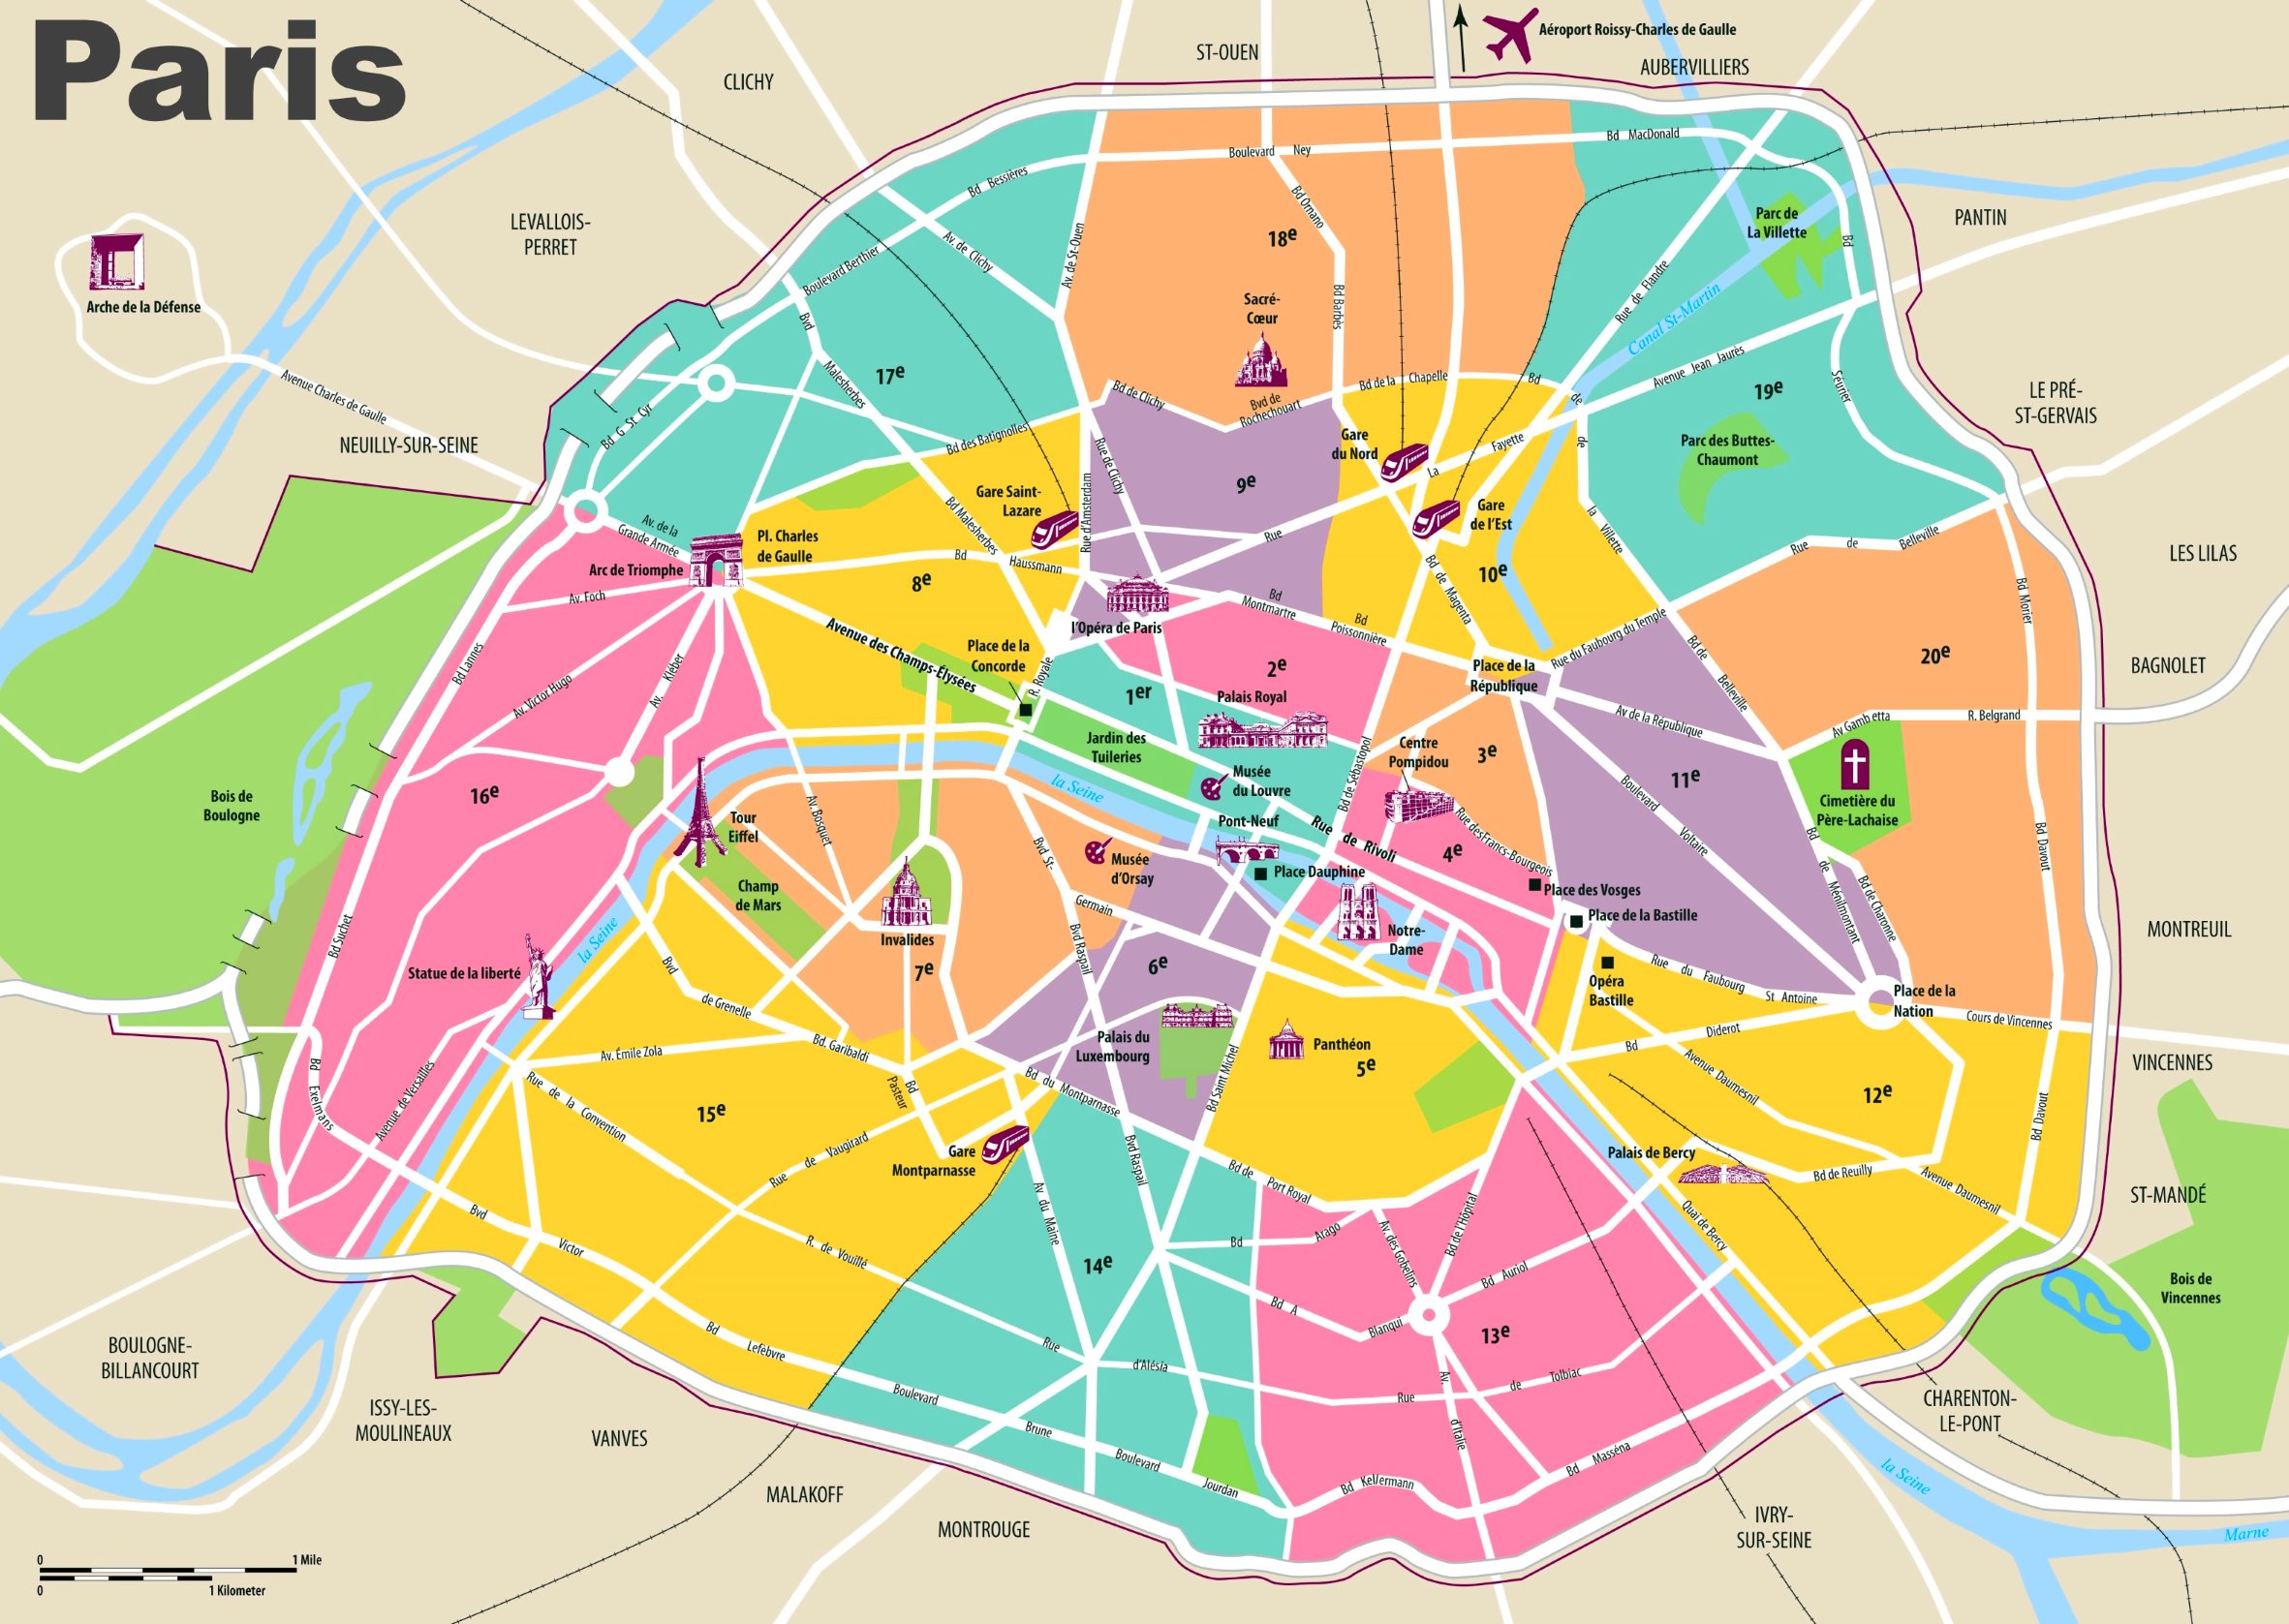 Paris Maps France – Attraction Map of Paris